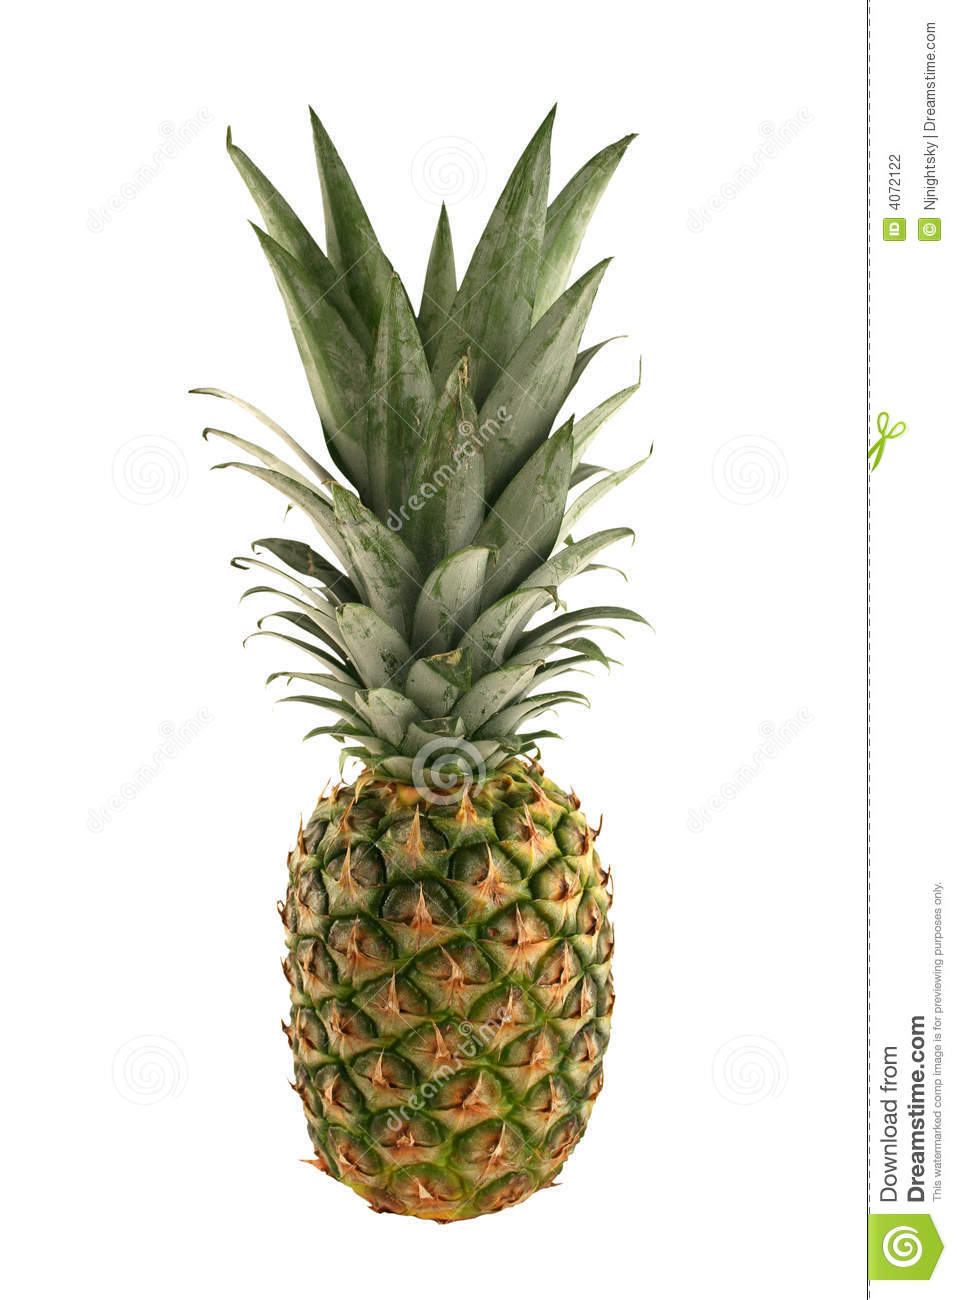 Children who ate pineapple showed a lower risk of viral infections and children who the most had almost four times more white blood cells than the other two groups. This clearly shows that consuming pineapple daily is positively linked to increased immunity levels.